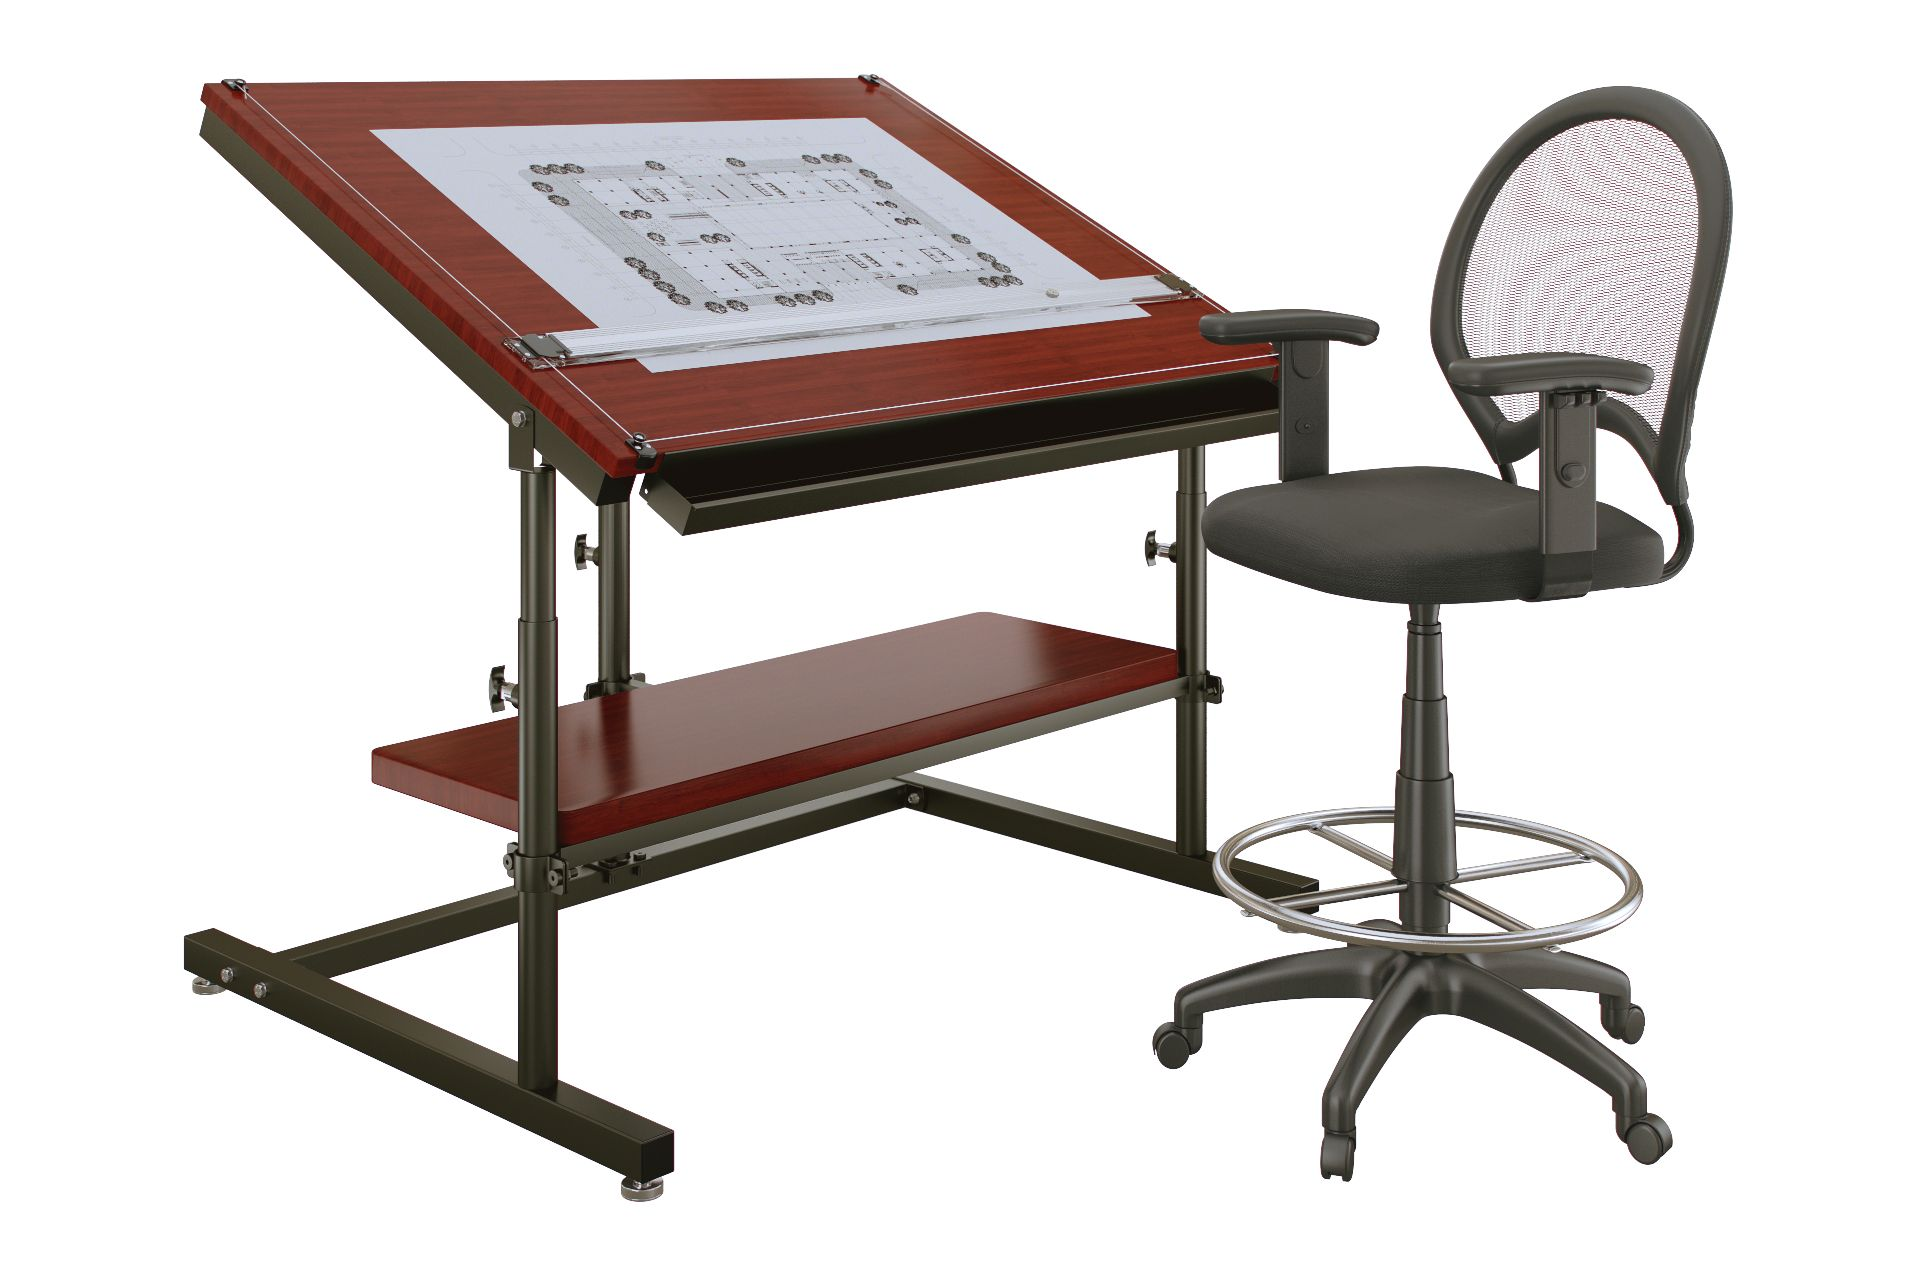 Professional Drafting Table Desk By Versa Tables Furniture